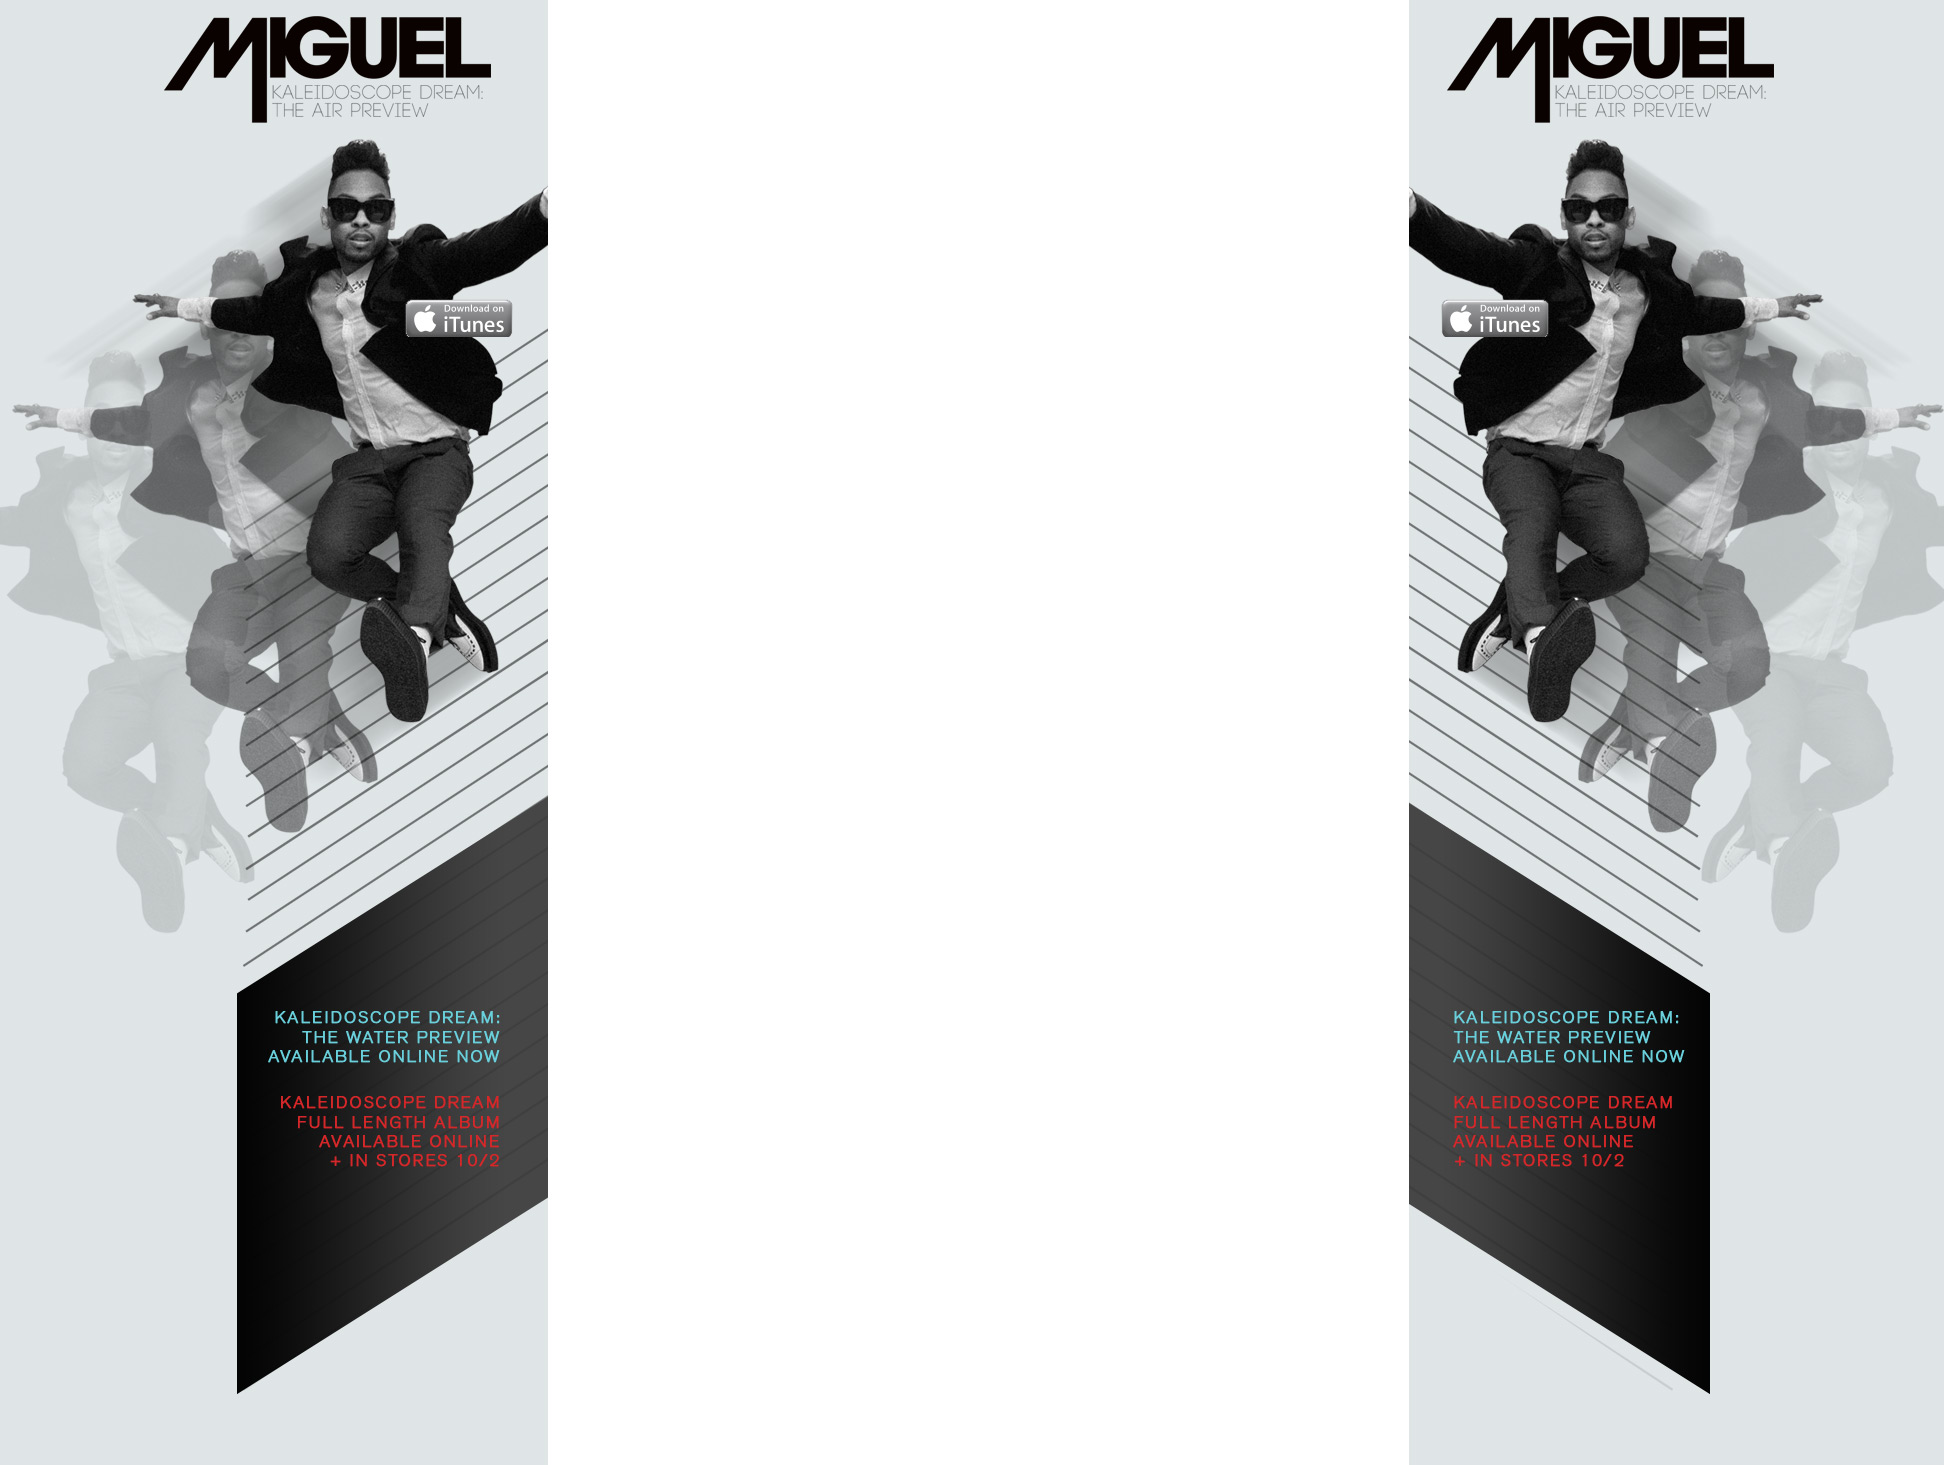 miguel_takeover_ready2.jpg